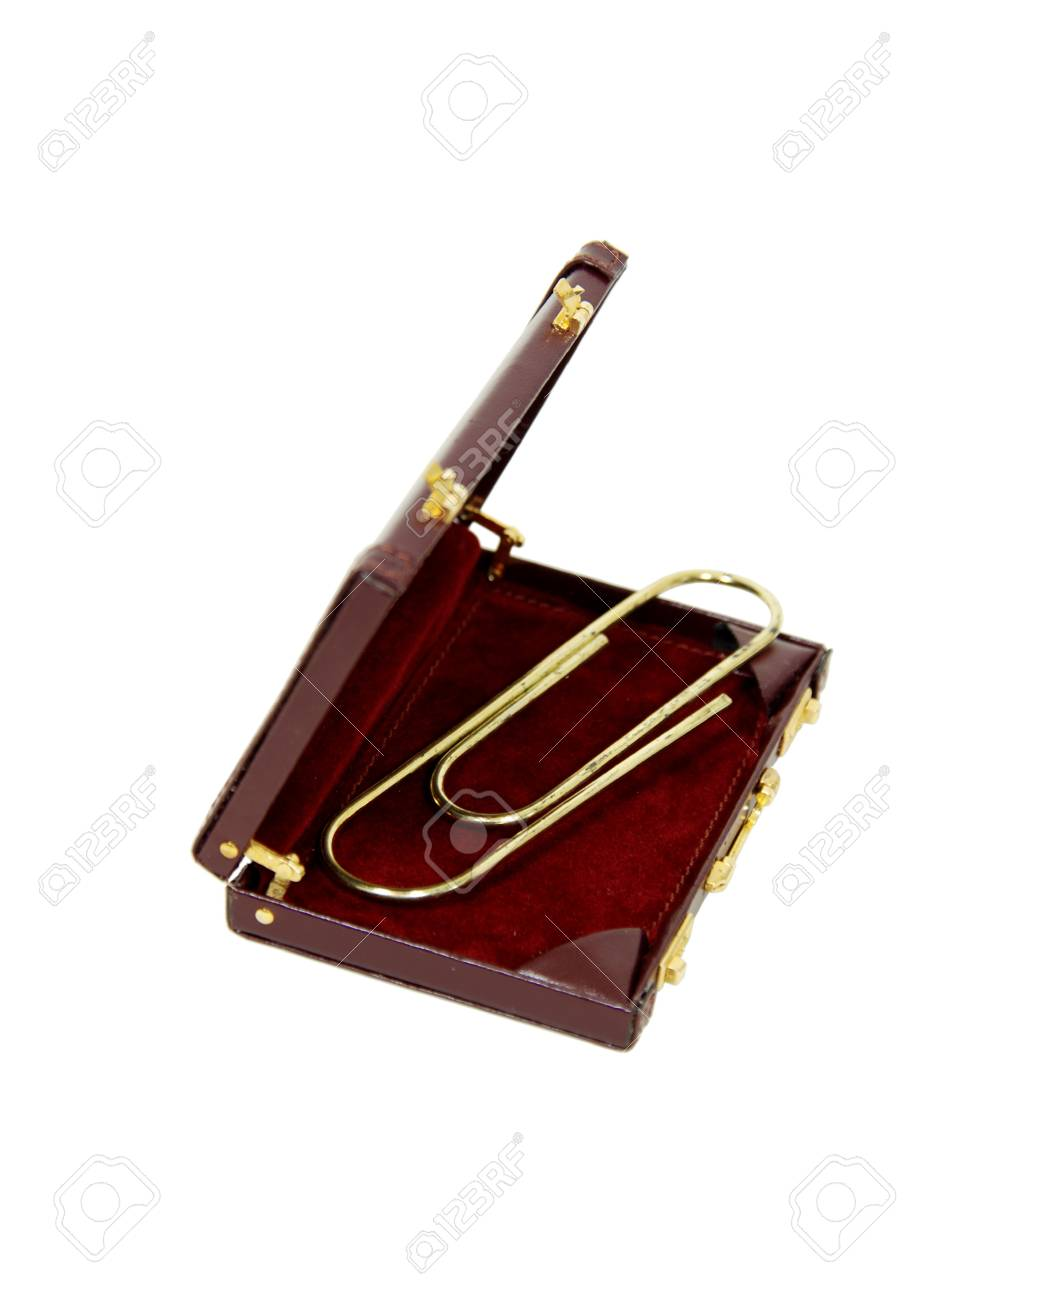 Paperclip used to hold pages or other media together in a leather briefcase used to carry items to the office Stock Photo - 4179143